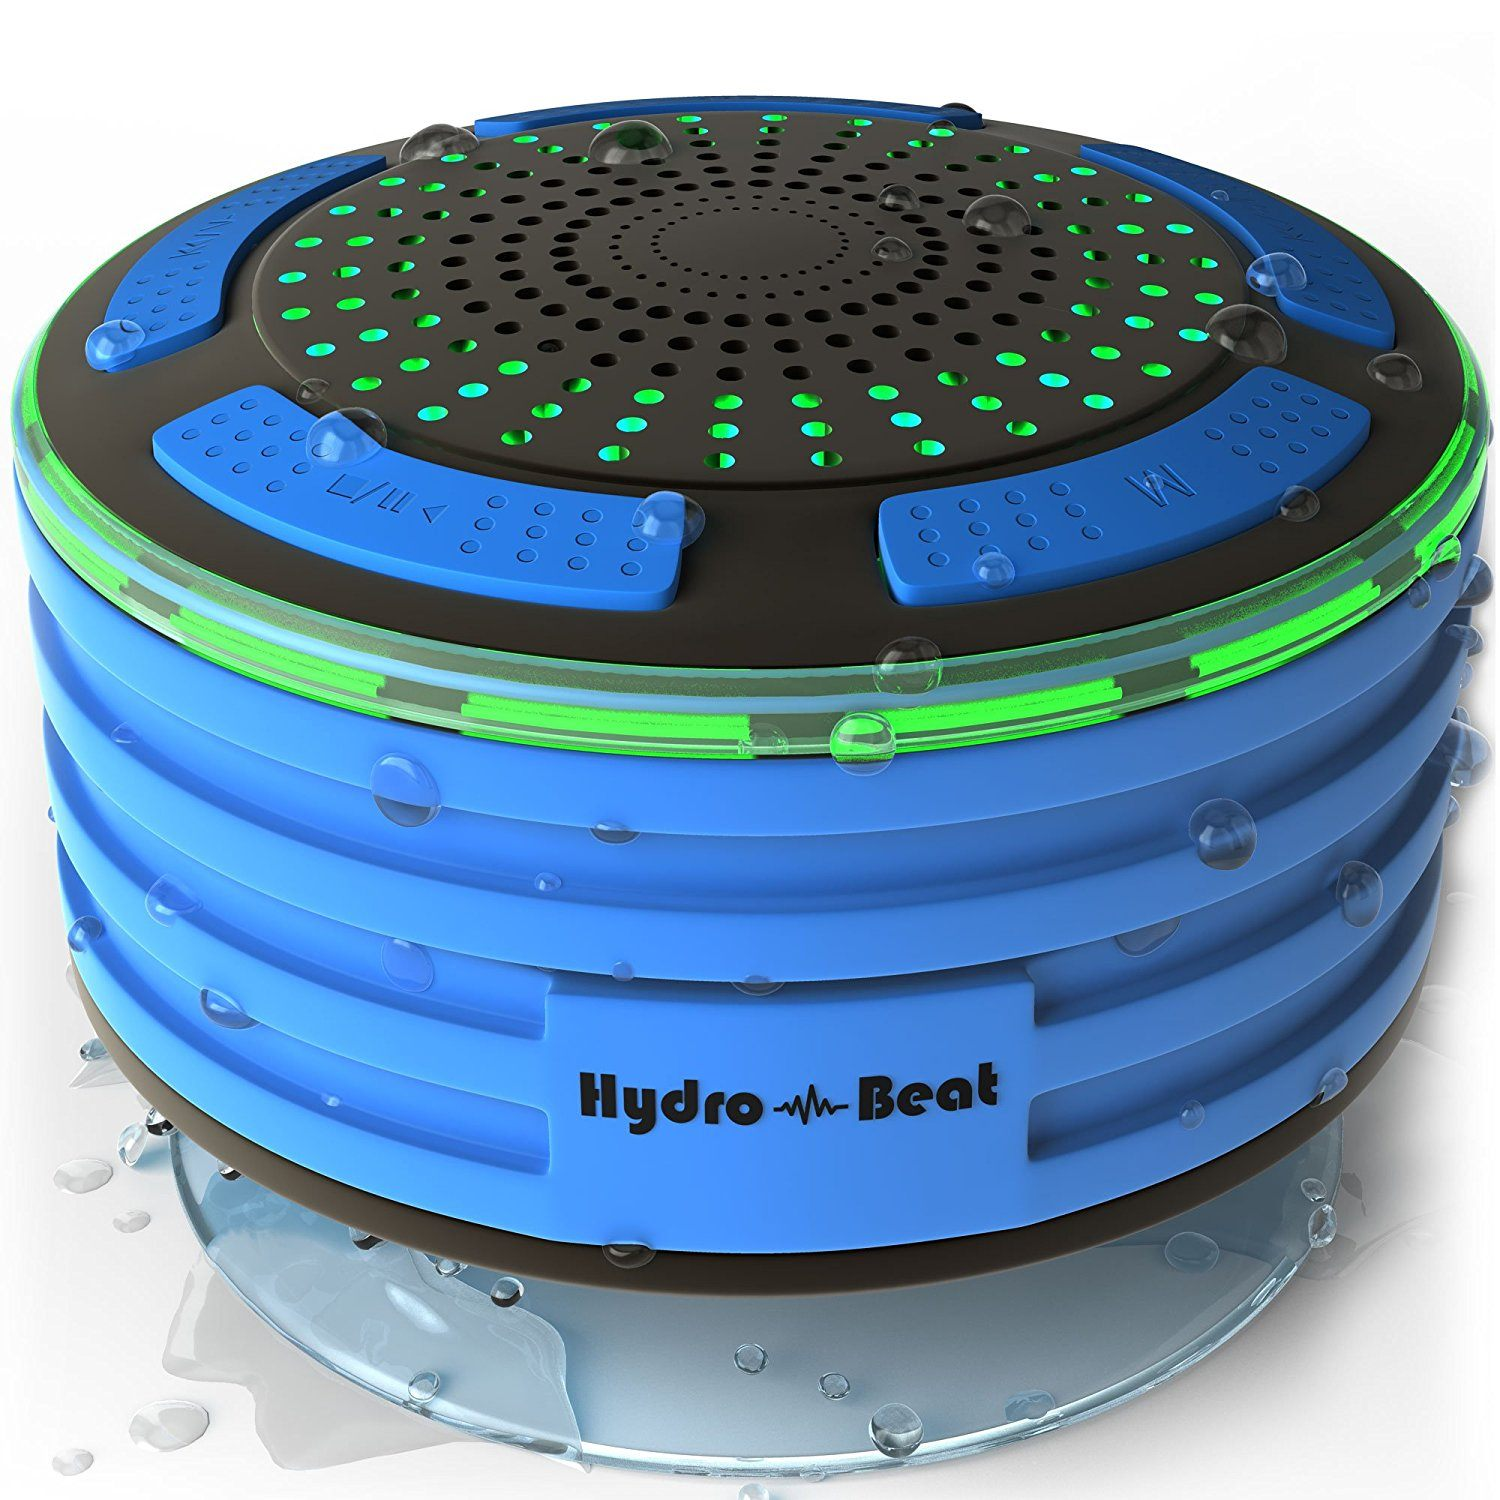 Hydro-Beat waterproof shower speaker | Amazon